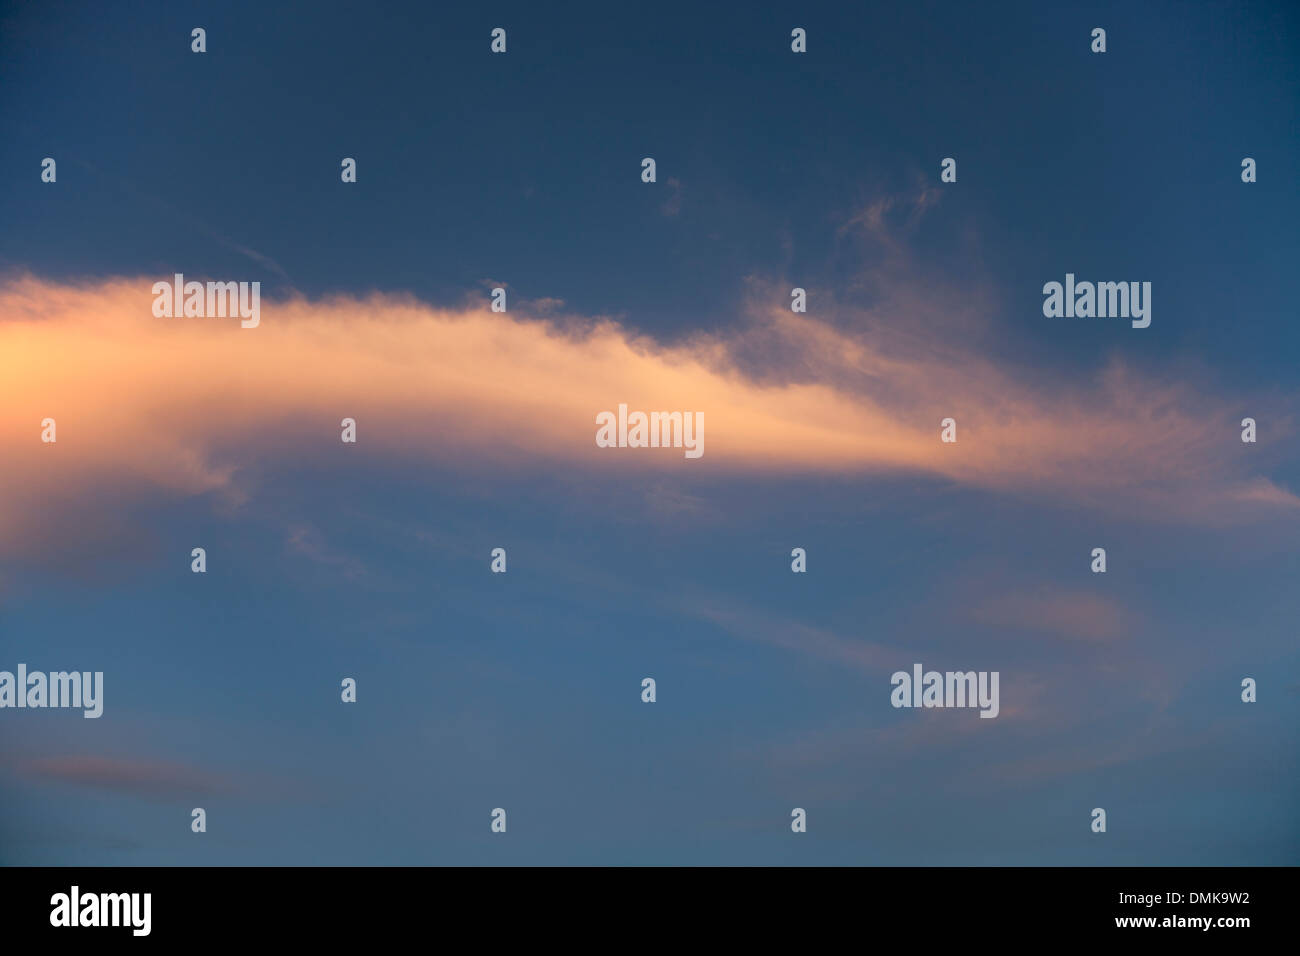 Wispy cloud formations catching the colours of the setting sun. - Stock Image